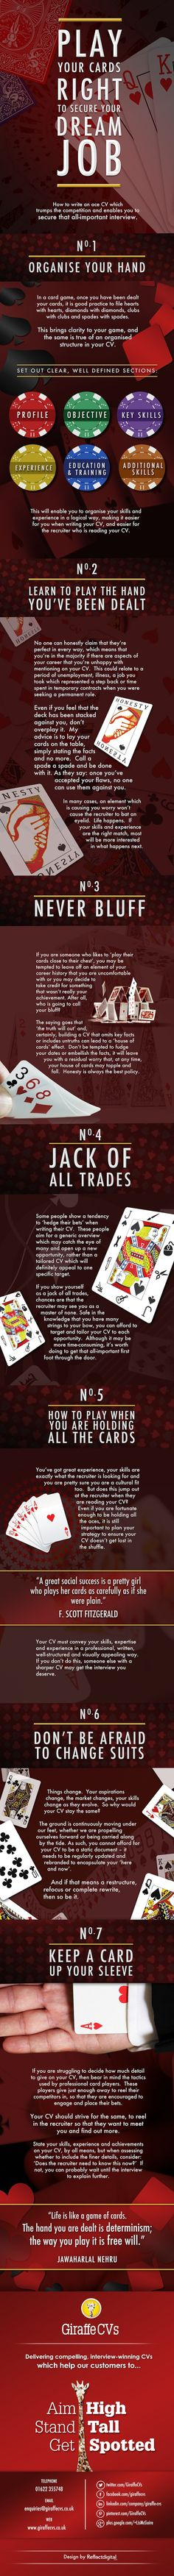 How to Play Your Cards Right and Get Your Dream Job [INFOGRAPHIC] Not that entrepreneurs want jobs, but solid advice on organizing how to present yourself howsoever you need to.